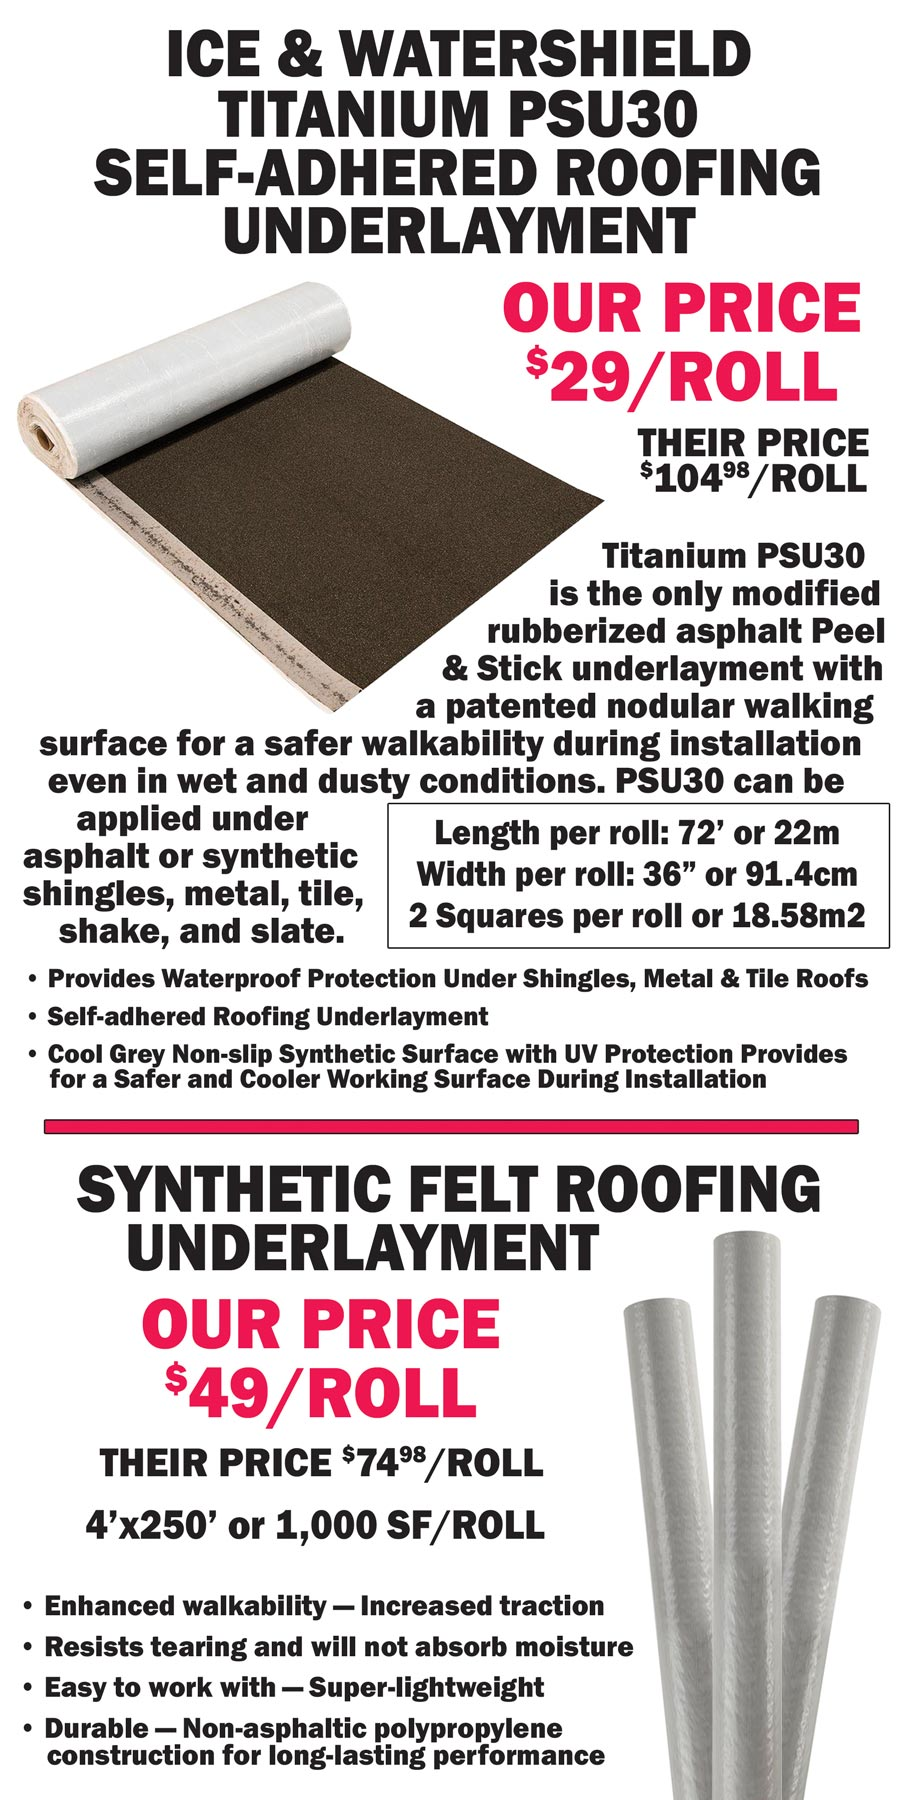 Ice and Watershield and Synthetic Felt Roofing Underlayment